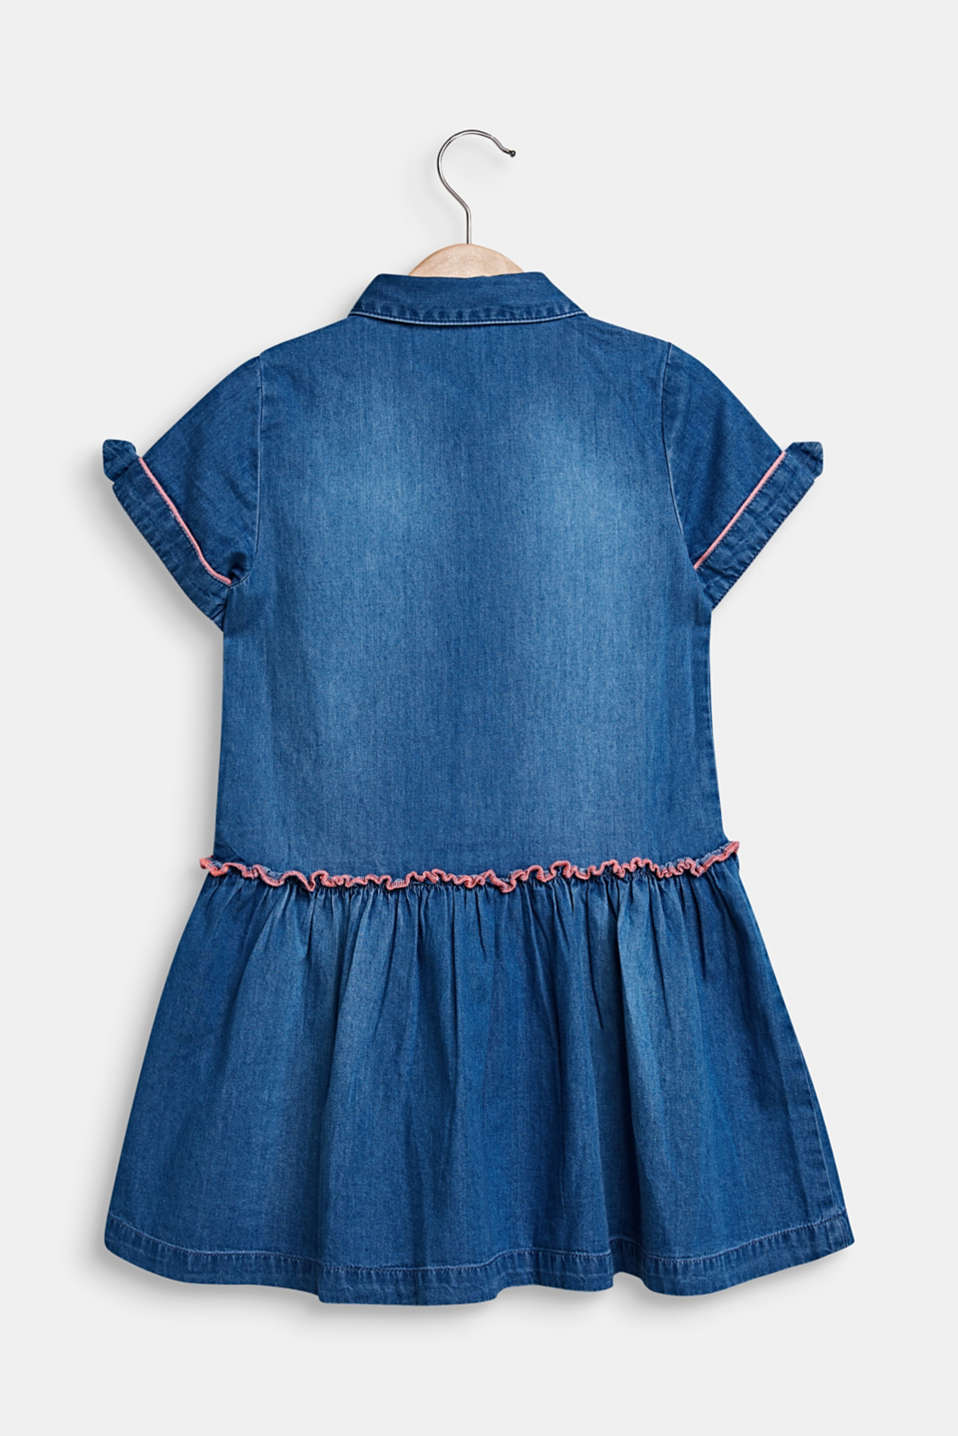 Denim dress in a garment-washed look, 100% cotton, MEDIUM WASH DE, detail image number 1